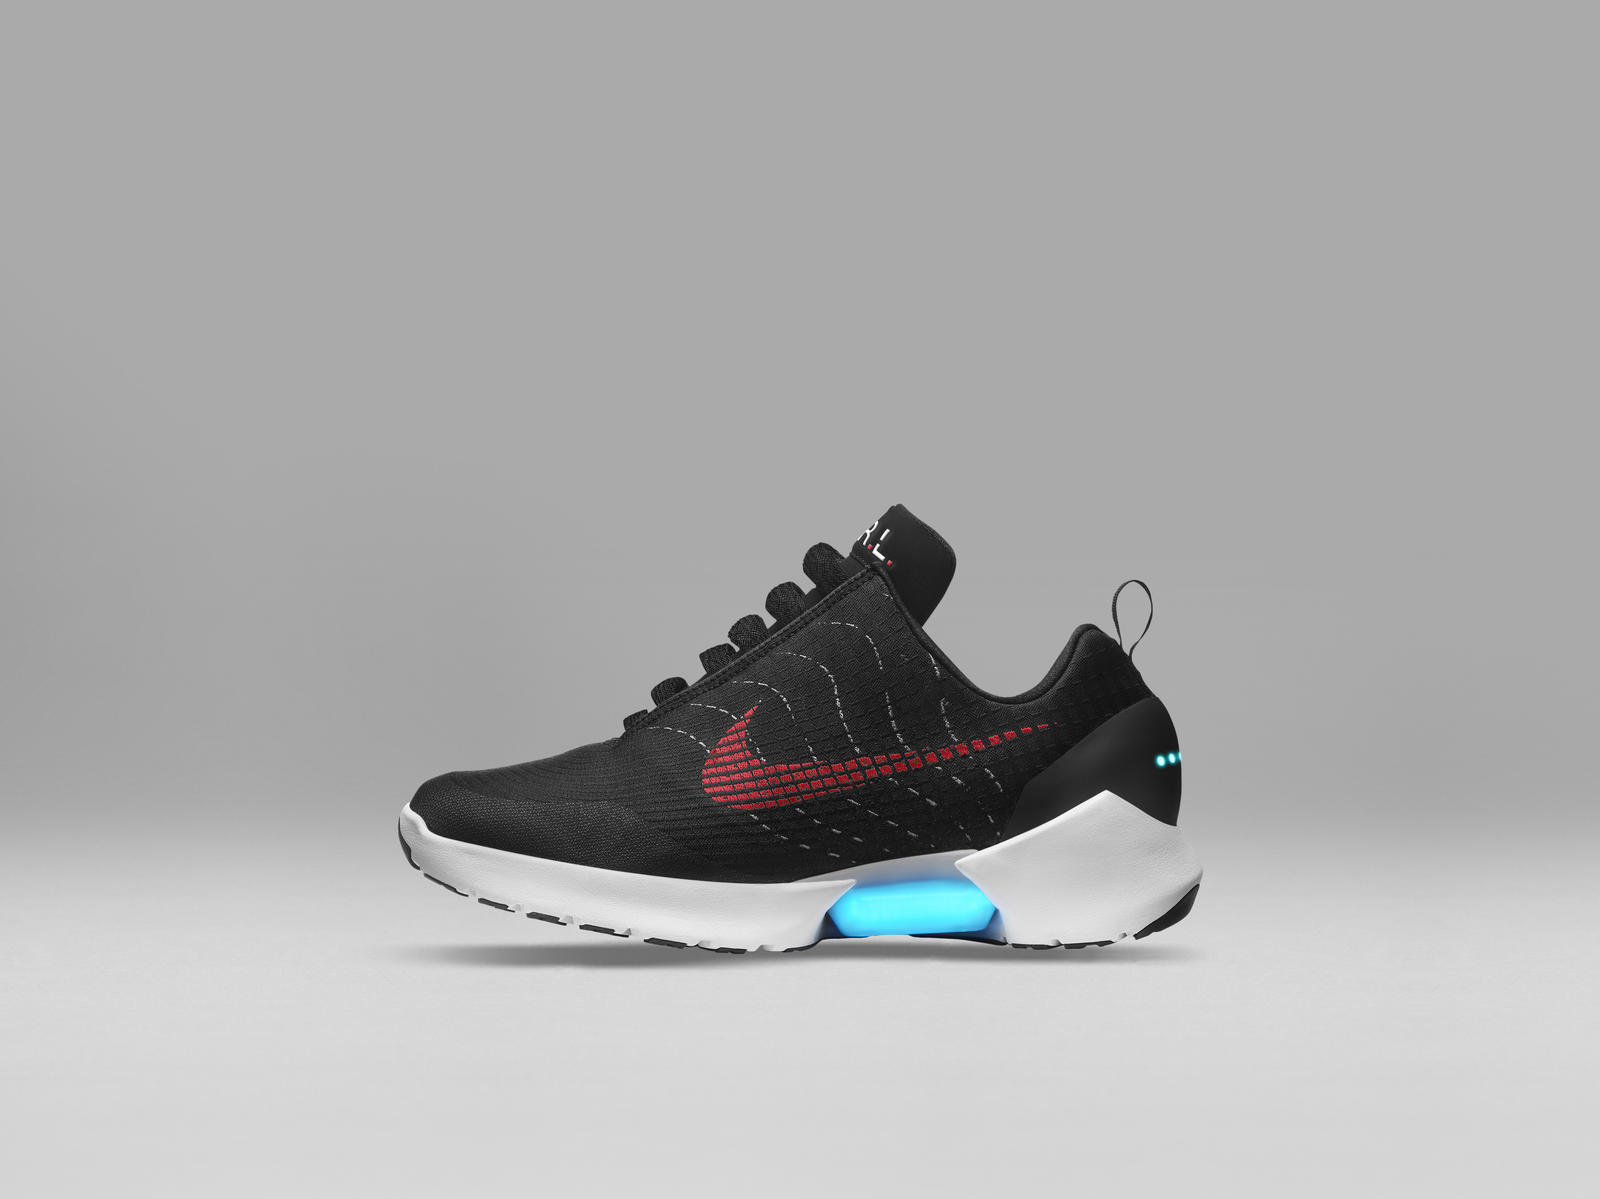 How to Get the Nike HyperAdapt 1.0 - Nike News